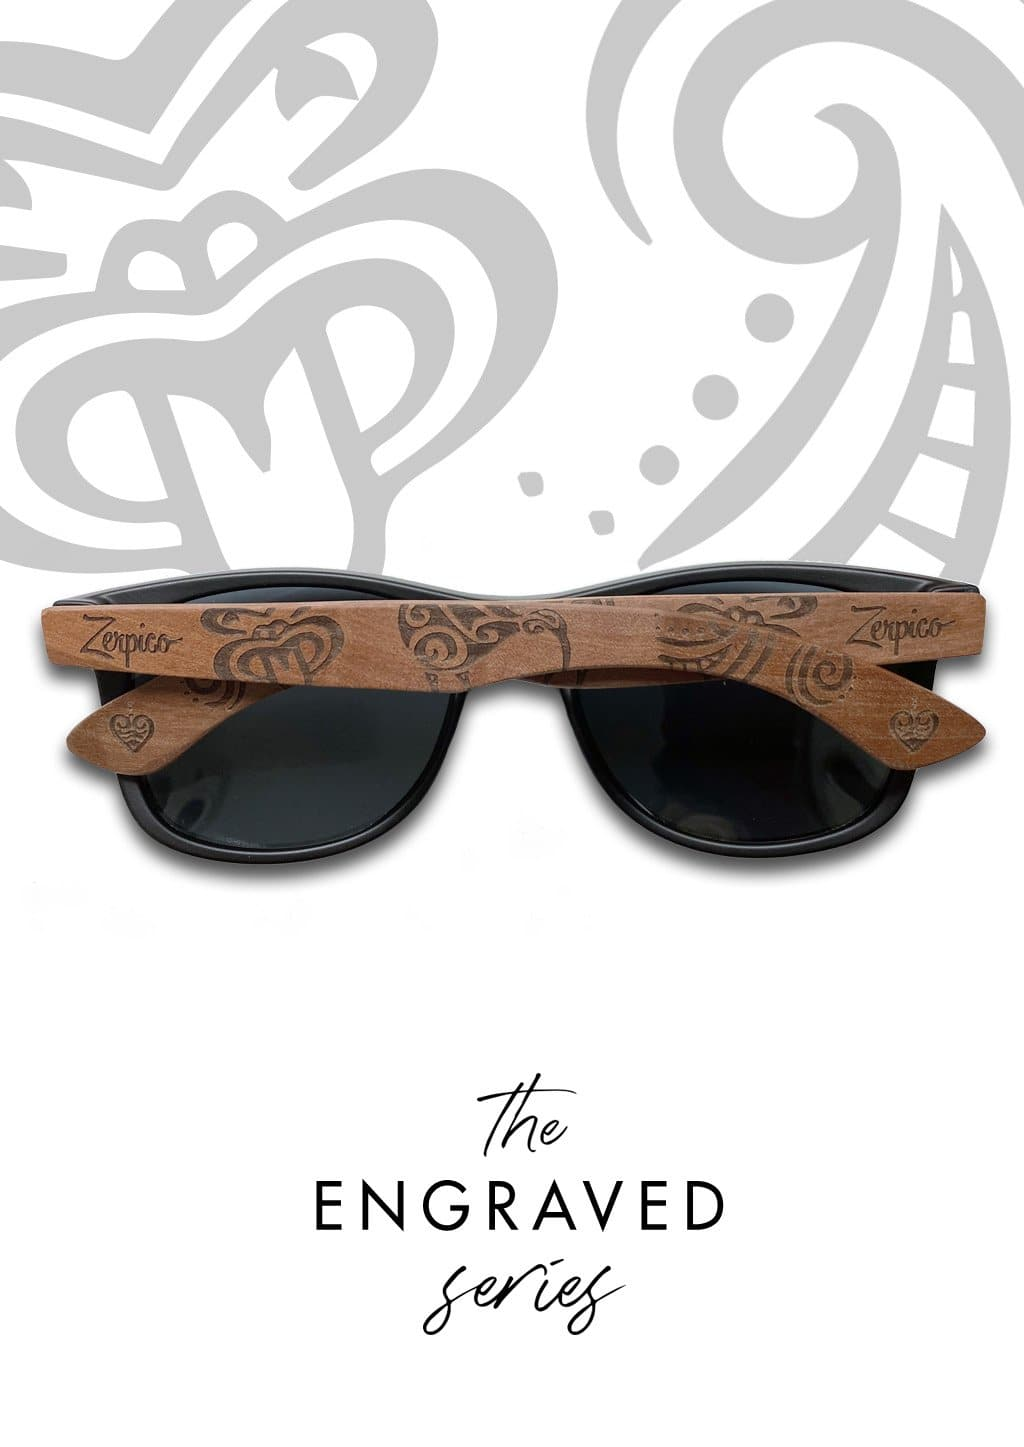 Eyewood Wayfarer  Spec. Ed. - Tribal - Our engraved wooden sunglasses with patterns from the Maori kingdoms.